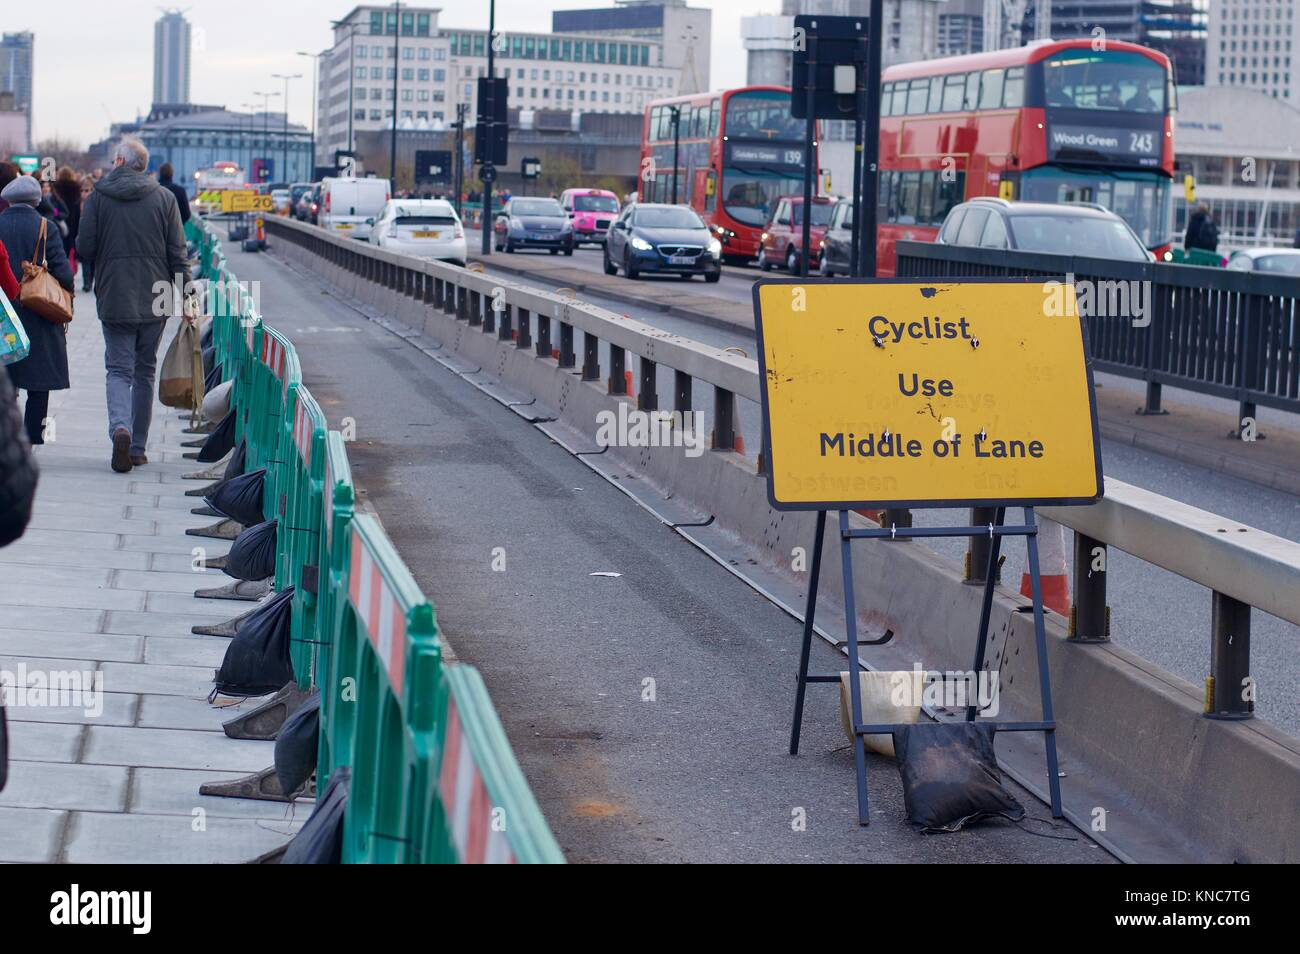 Anti-vehicle barriers on pavement of Waterloo Bridge installed after terror attack at London Bridge, London, UK - Stock Image